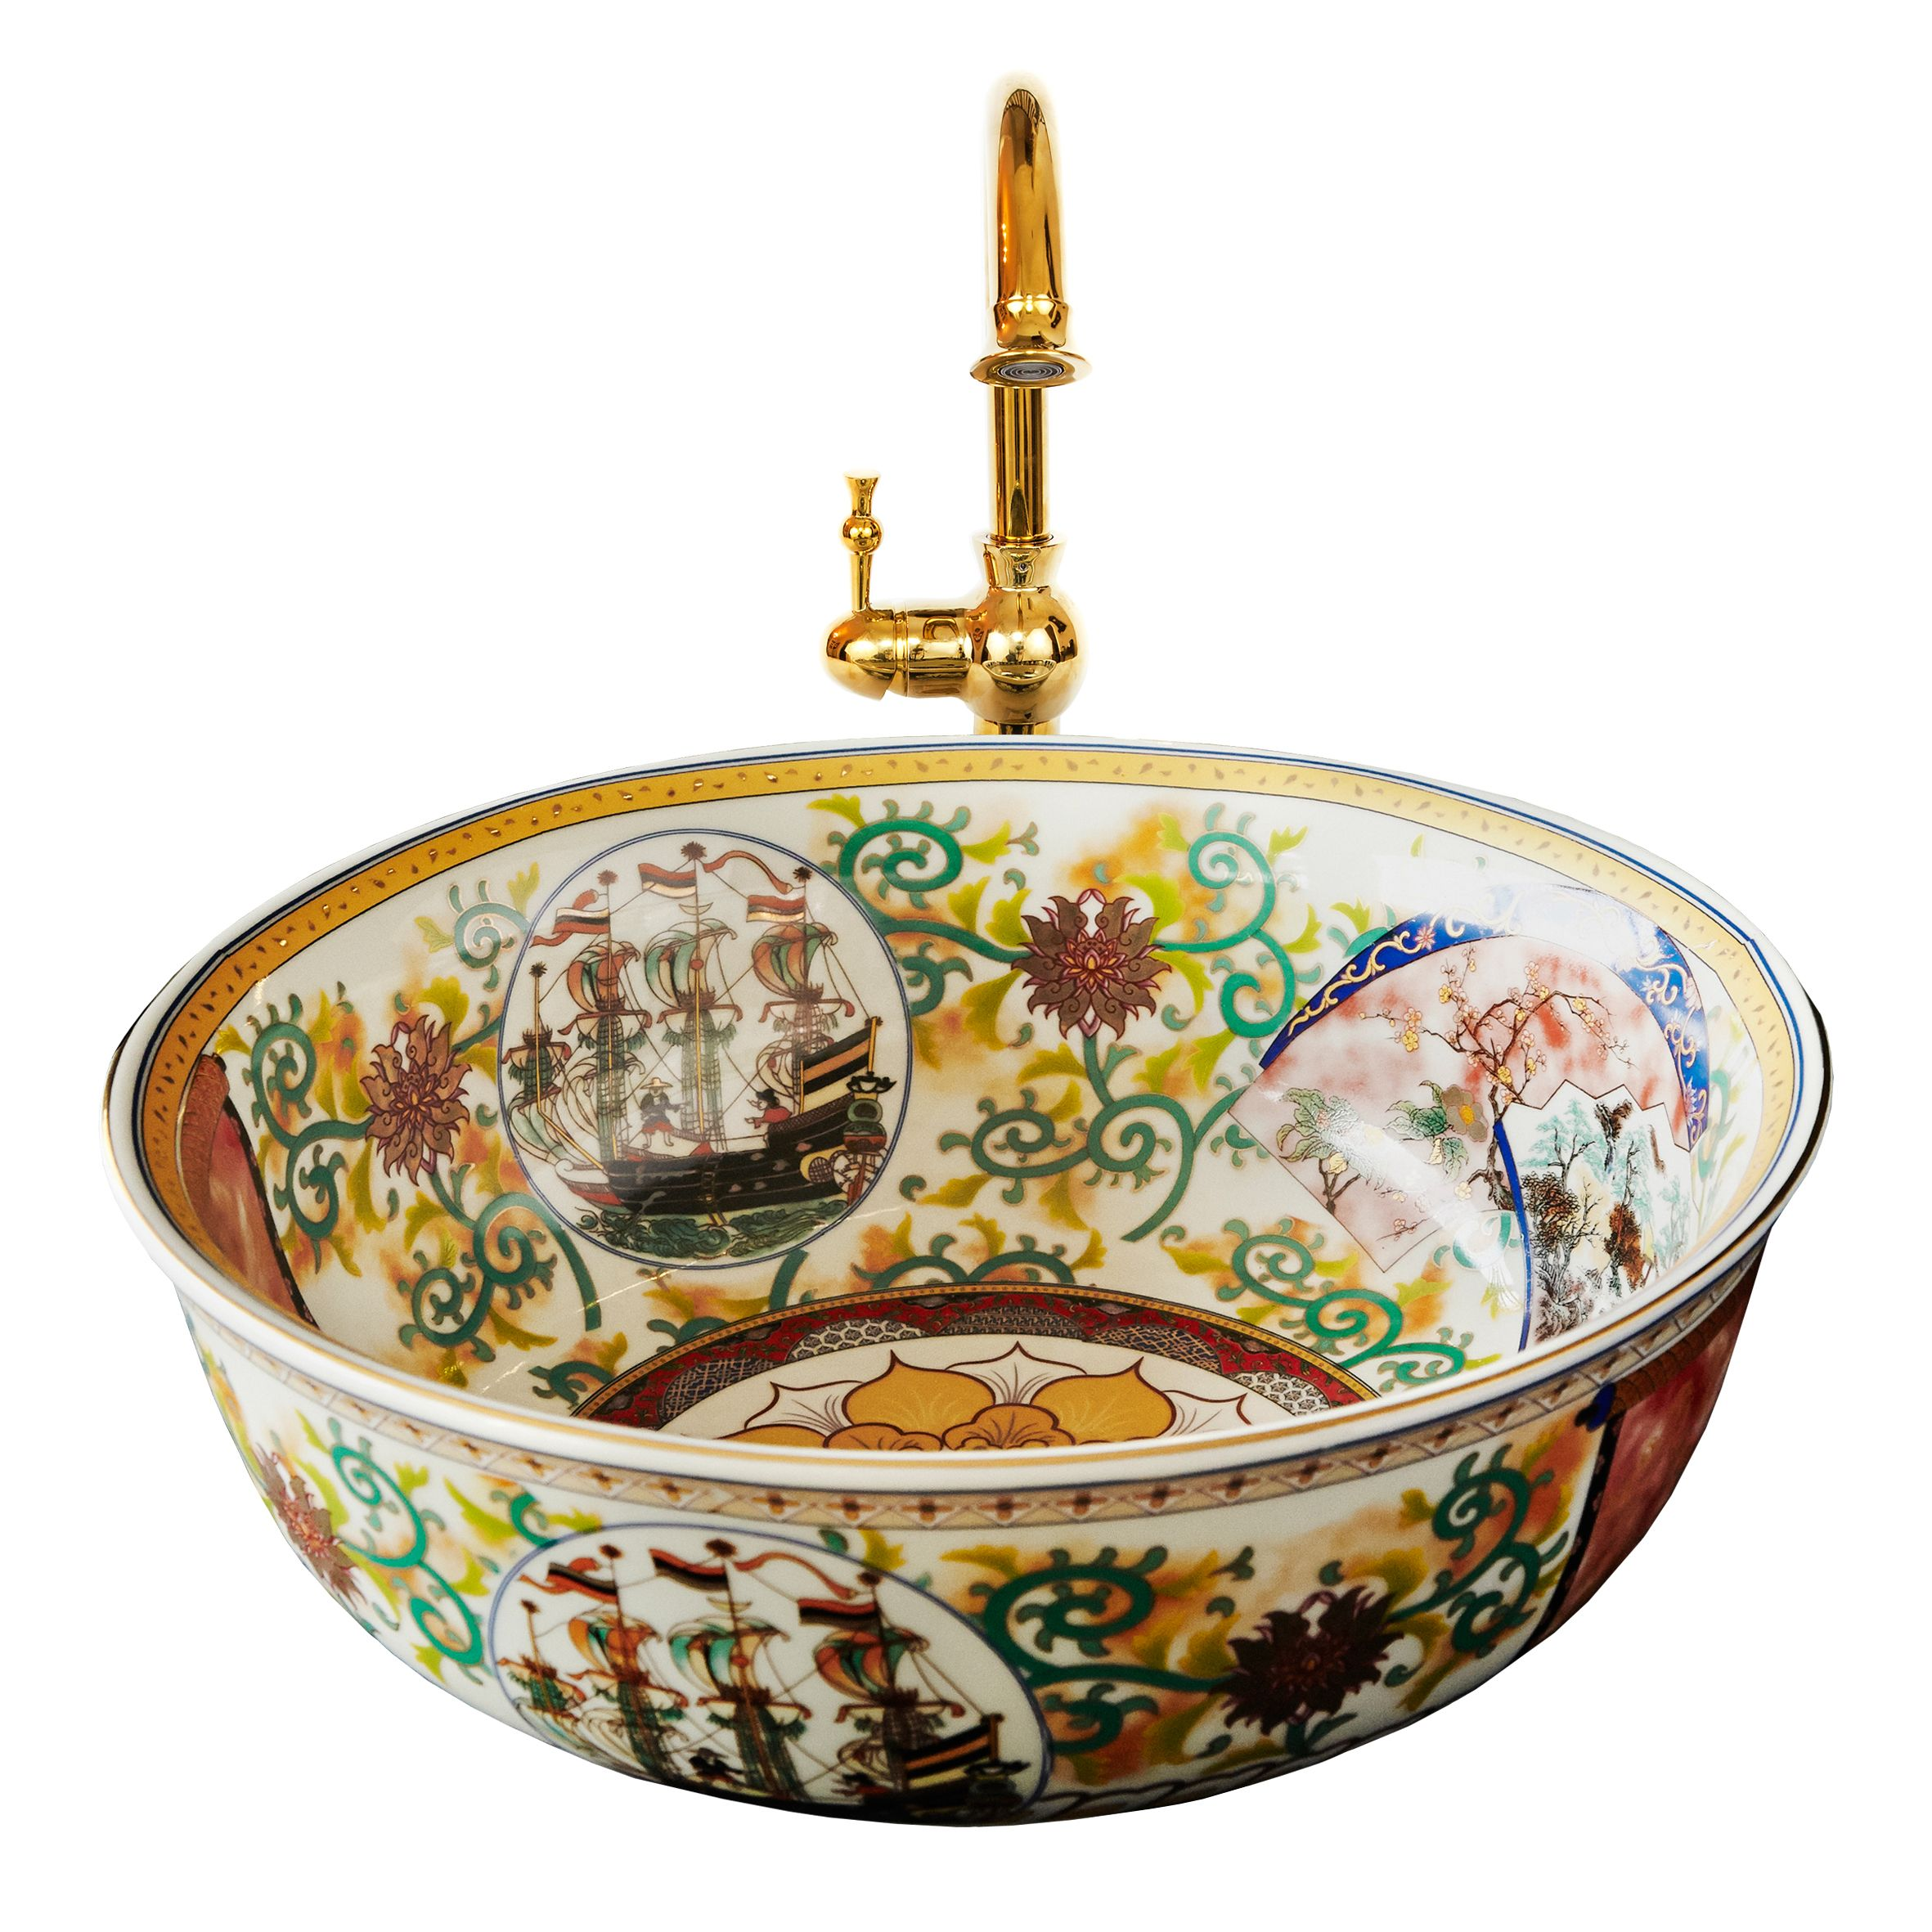 Badezimmer Set London A Hand Decorated Porcelain Basin From The London Basin Company